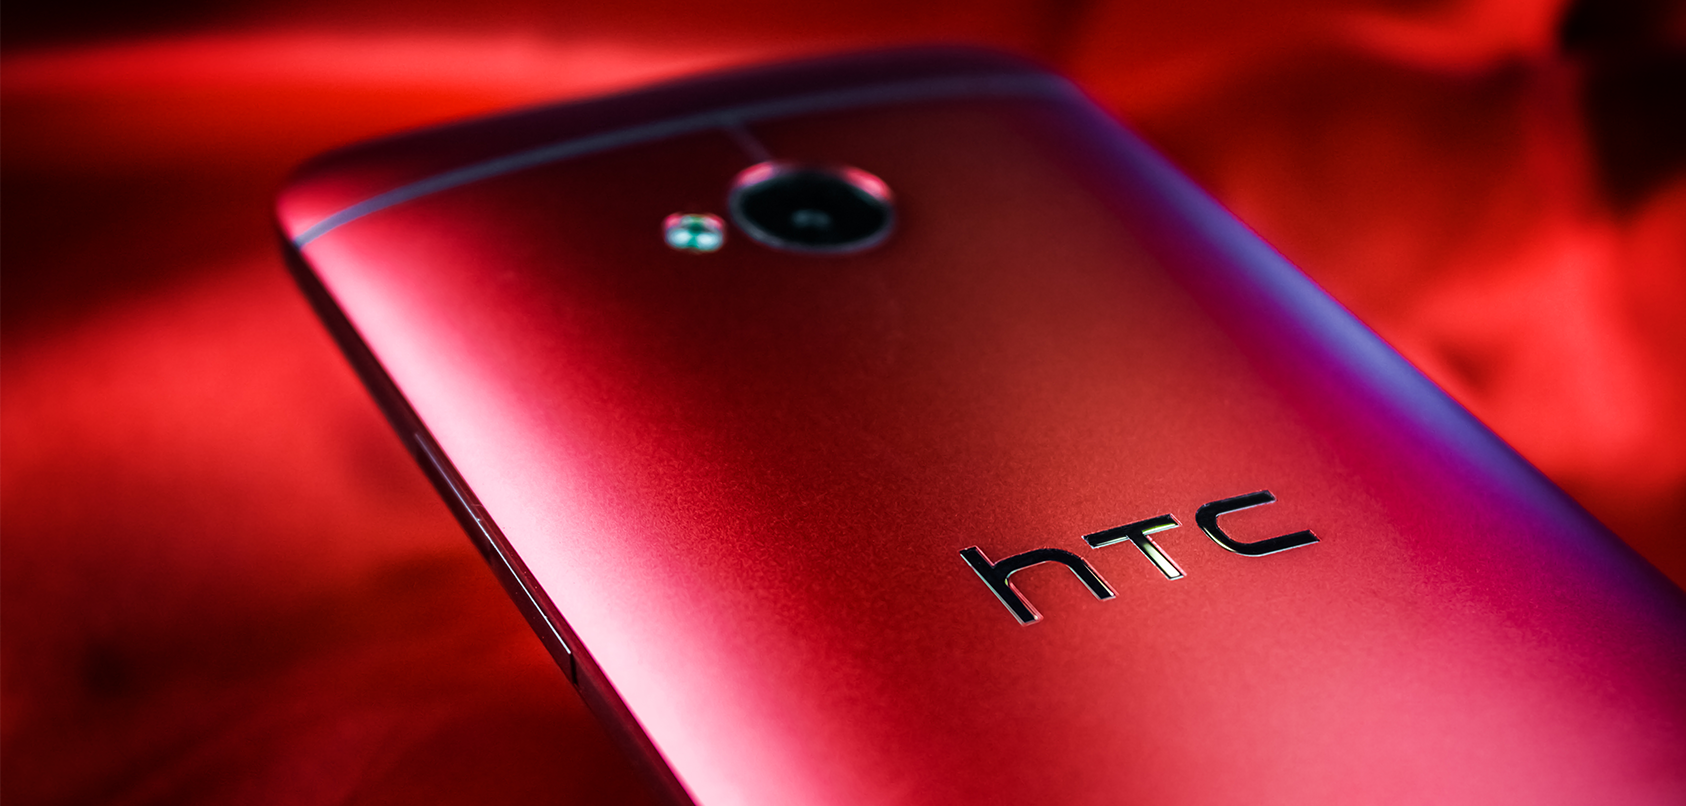 Roses are red, this phone is red, poems are hard. #HTCOne http://t.co/yS6tDWzrls